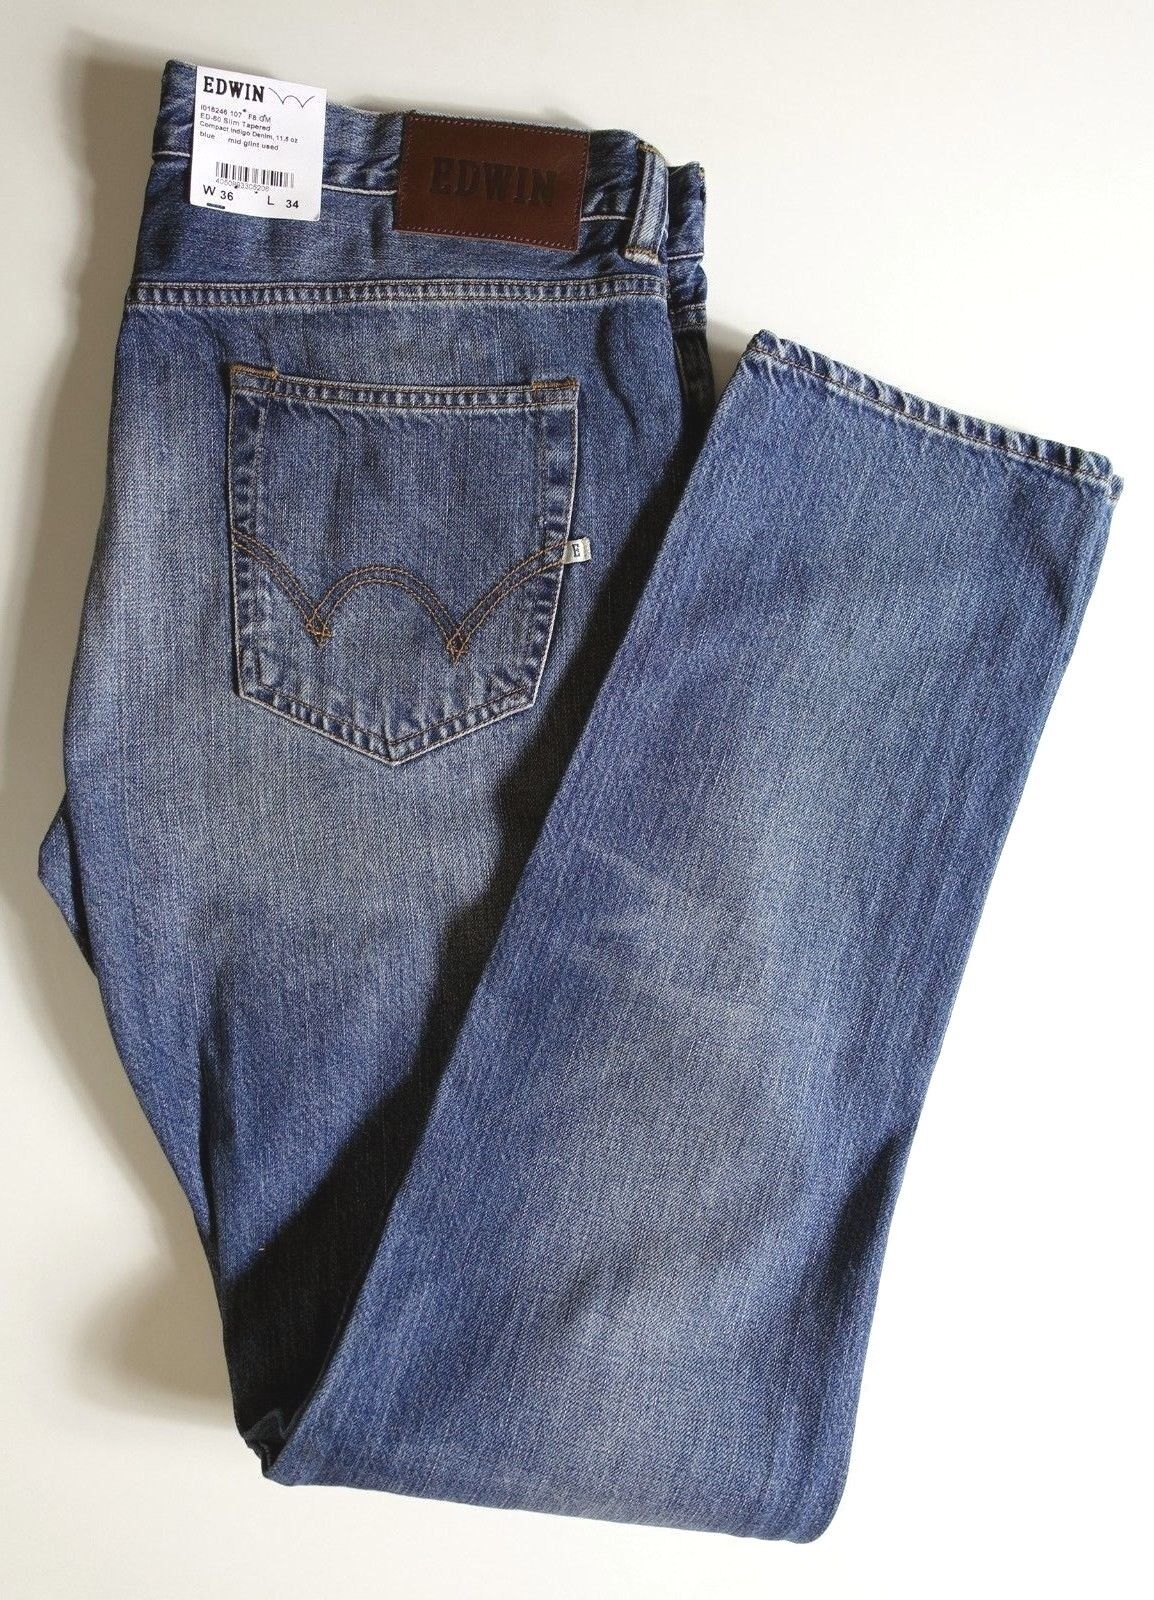 Pantalon Jeans EDWIN neuf étiquette Japan ED-80 slim tapered blue W36 L34